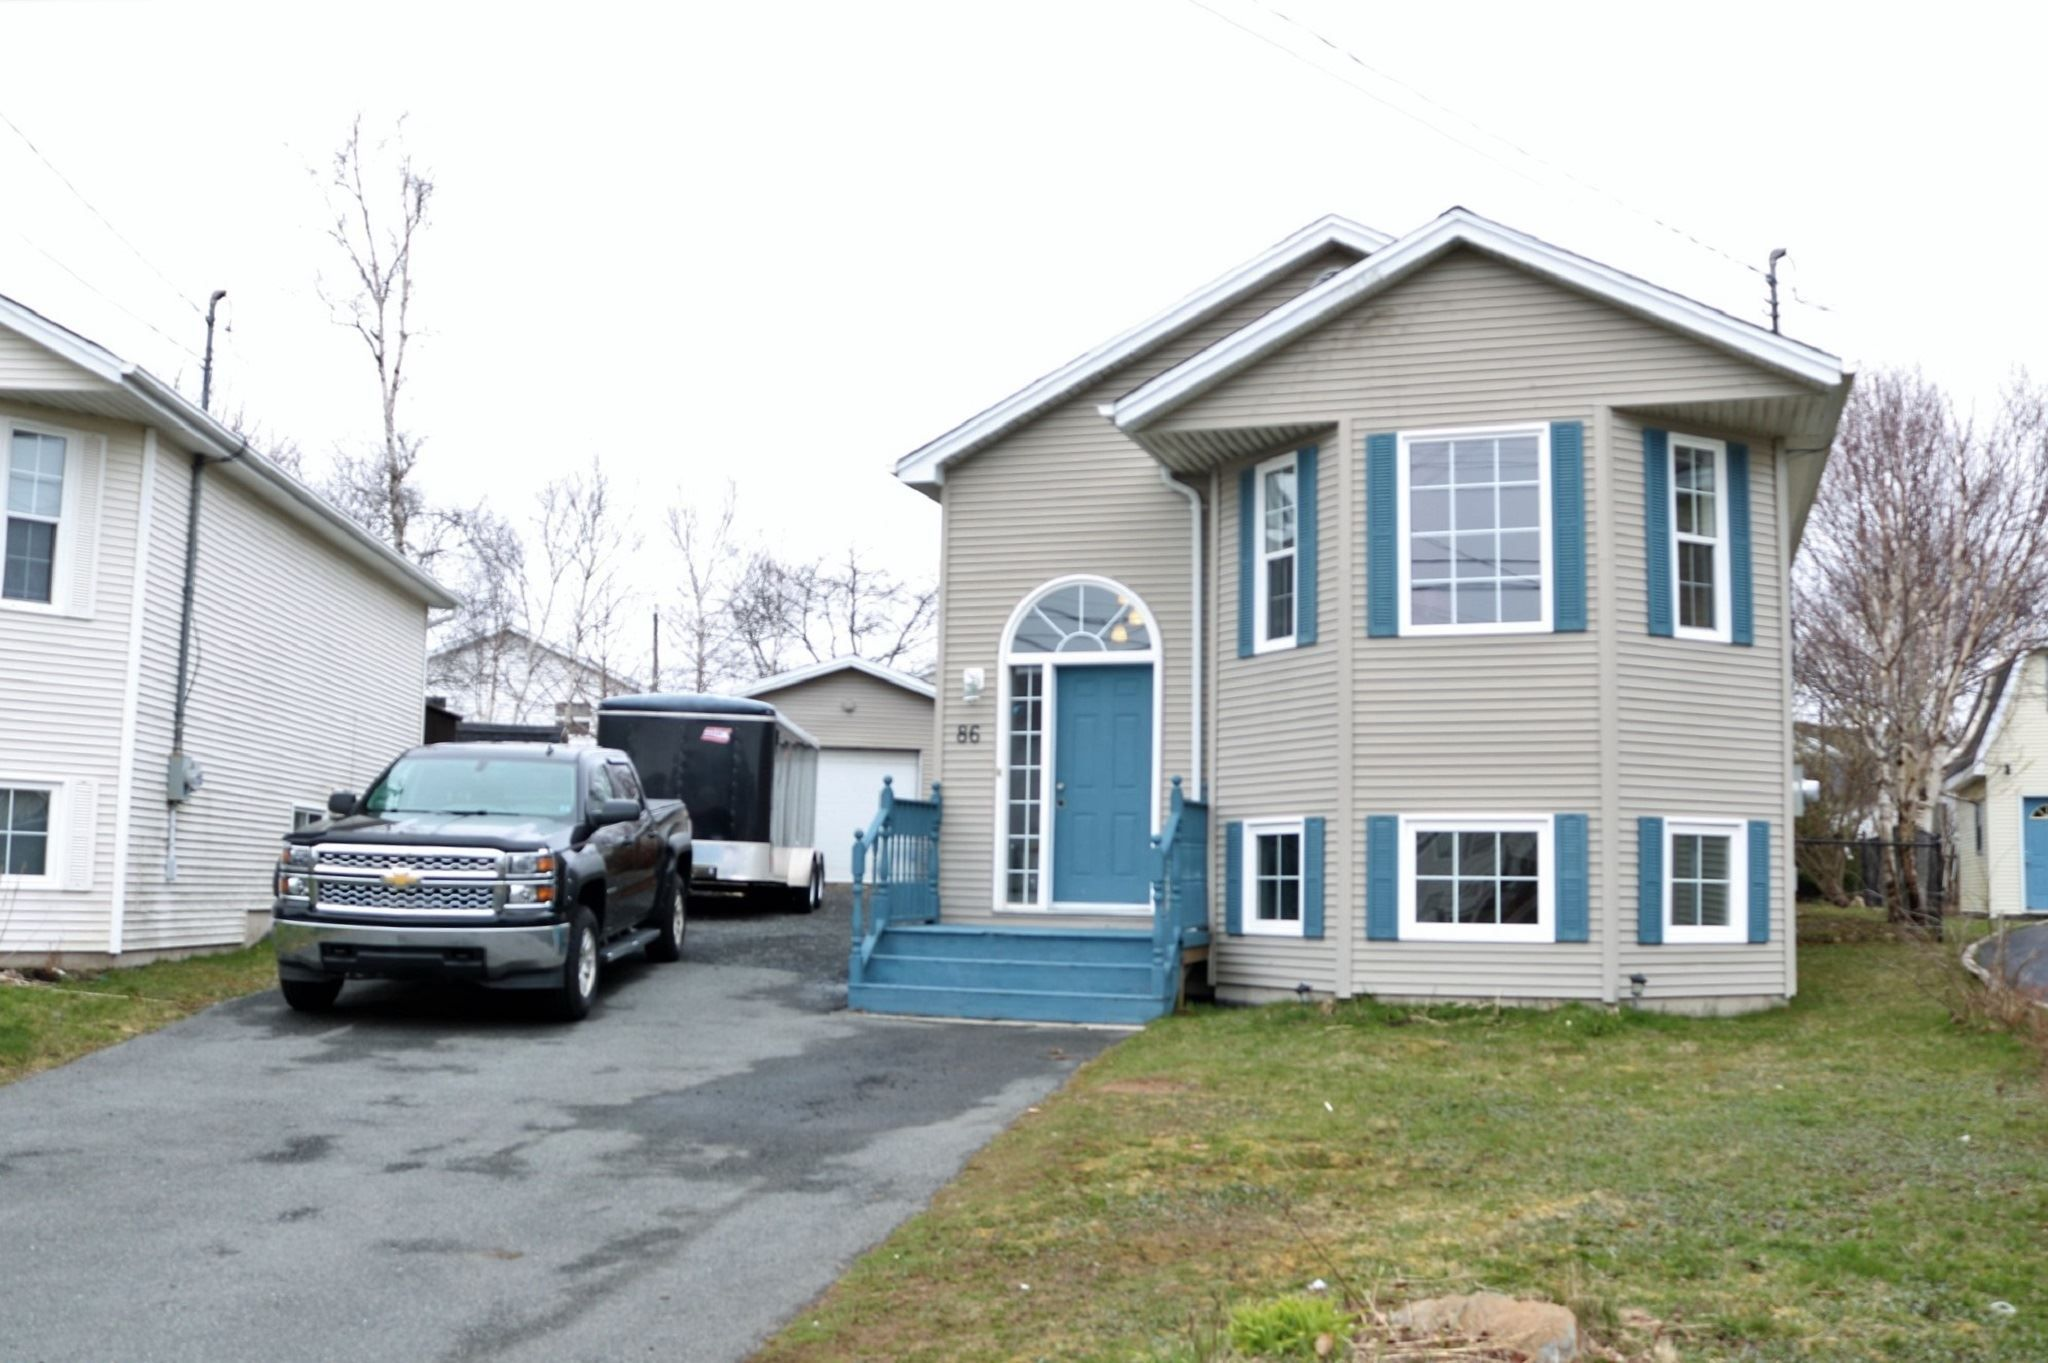 Main Photo: 86 Vicky Crescent in Eastern Passage: 11-Dartmouth Woodside, Eastern Passage, Cow Bay Residential for sale (Halifax-Dartmouth)  : MLS®# 202108960